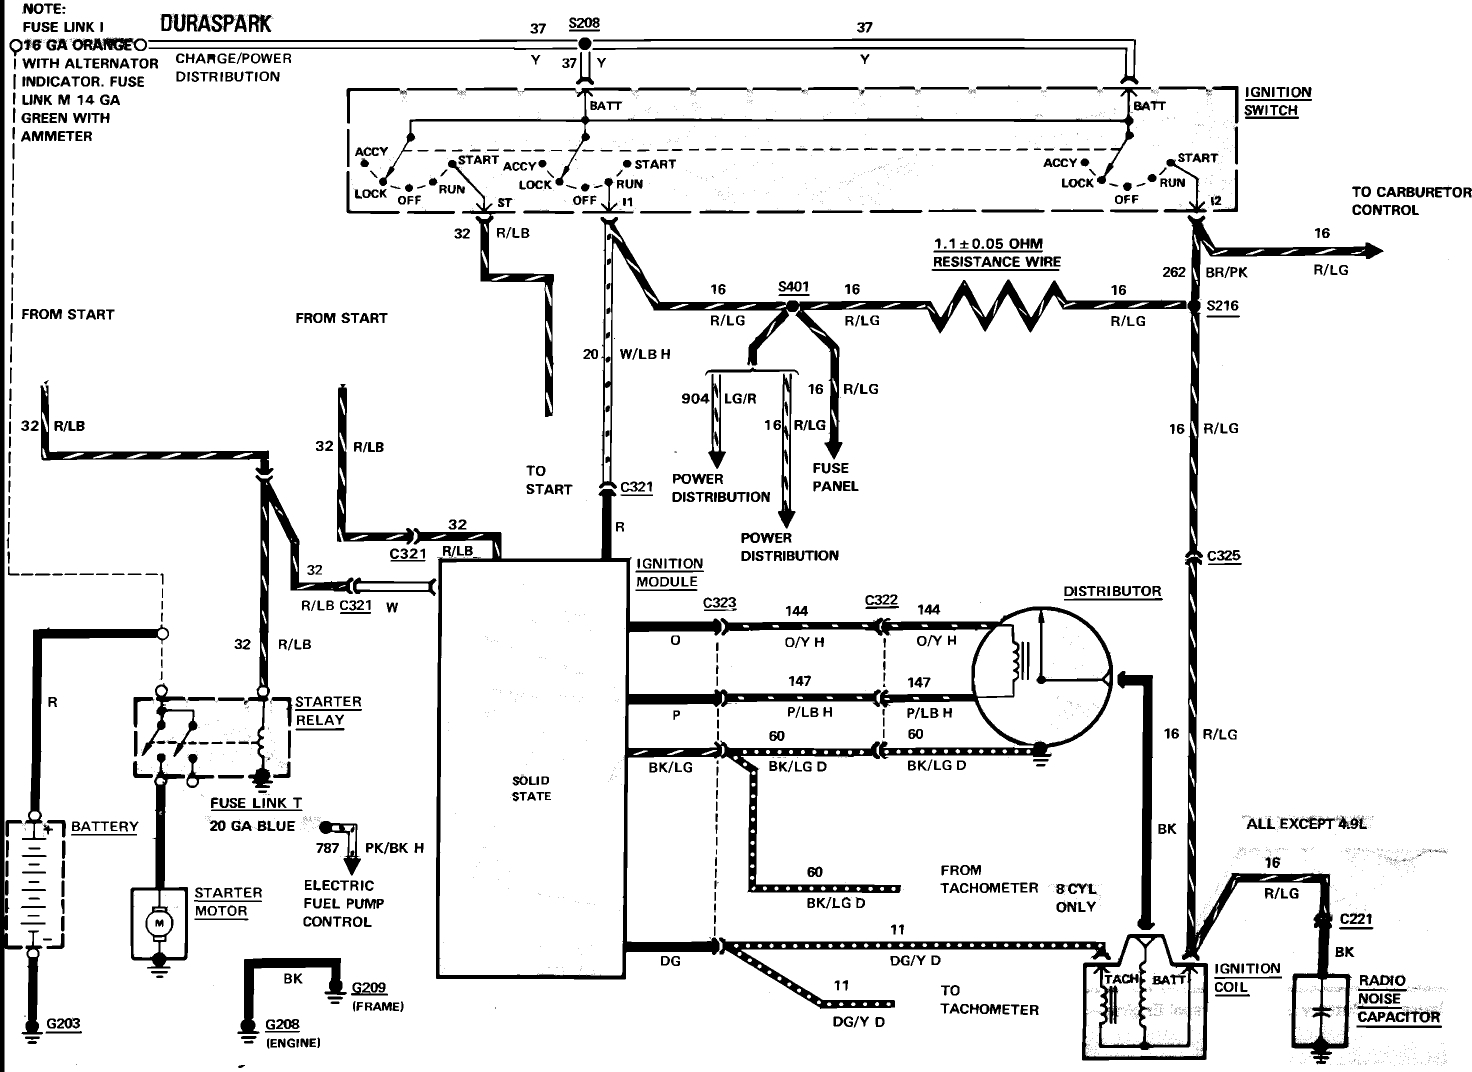 1976 f100 302 wiring diagram